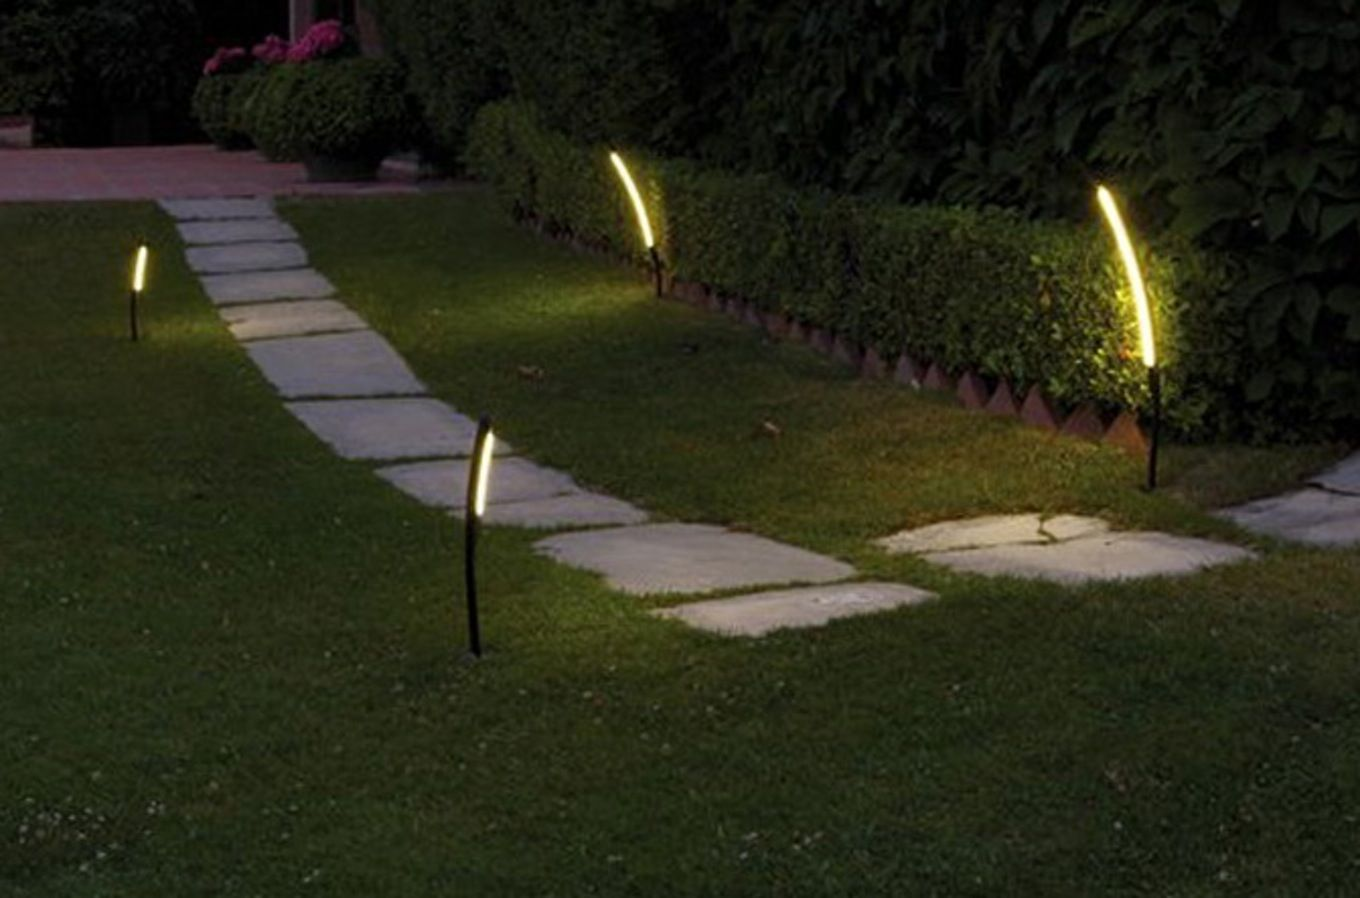 Eclairage Jardin A Led Eclairage Exterieur Design Lampe Luminaire Jardin Boule Discou Landscape Lighting Design Modern Landscape Lighting Landscape Lighting